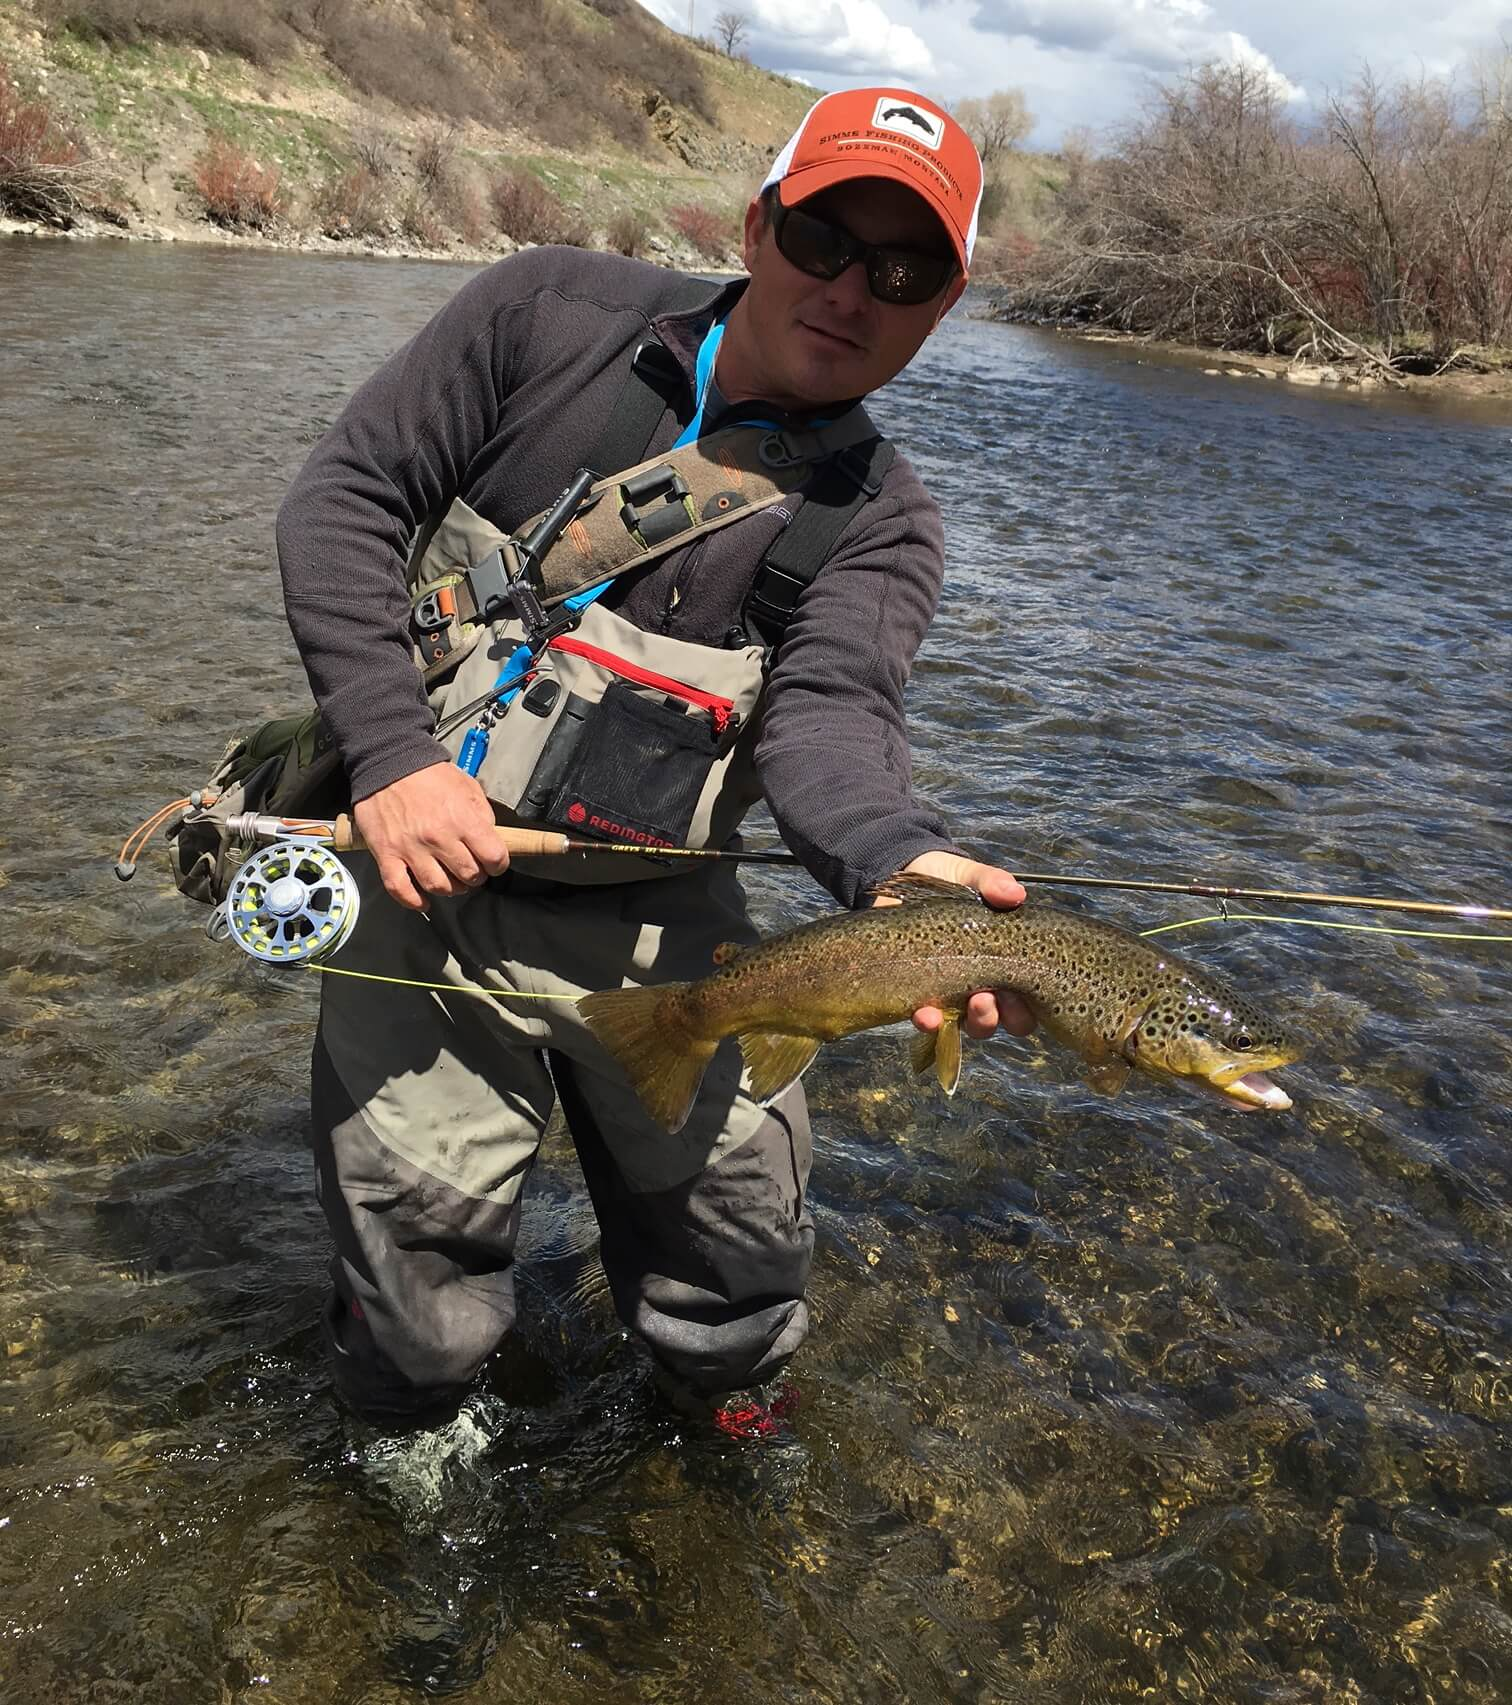 Park city fly fishing report 4 14 16 park city fly for Park city fly fishing